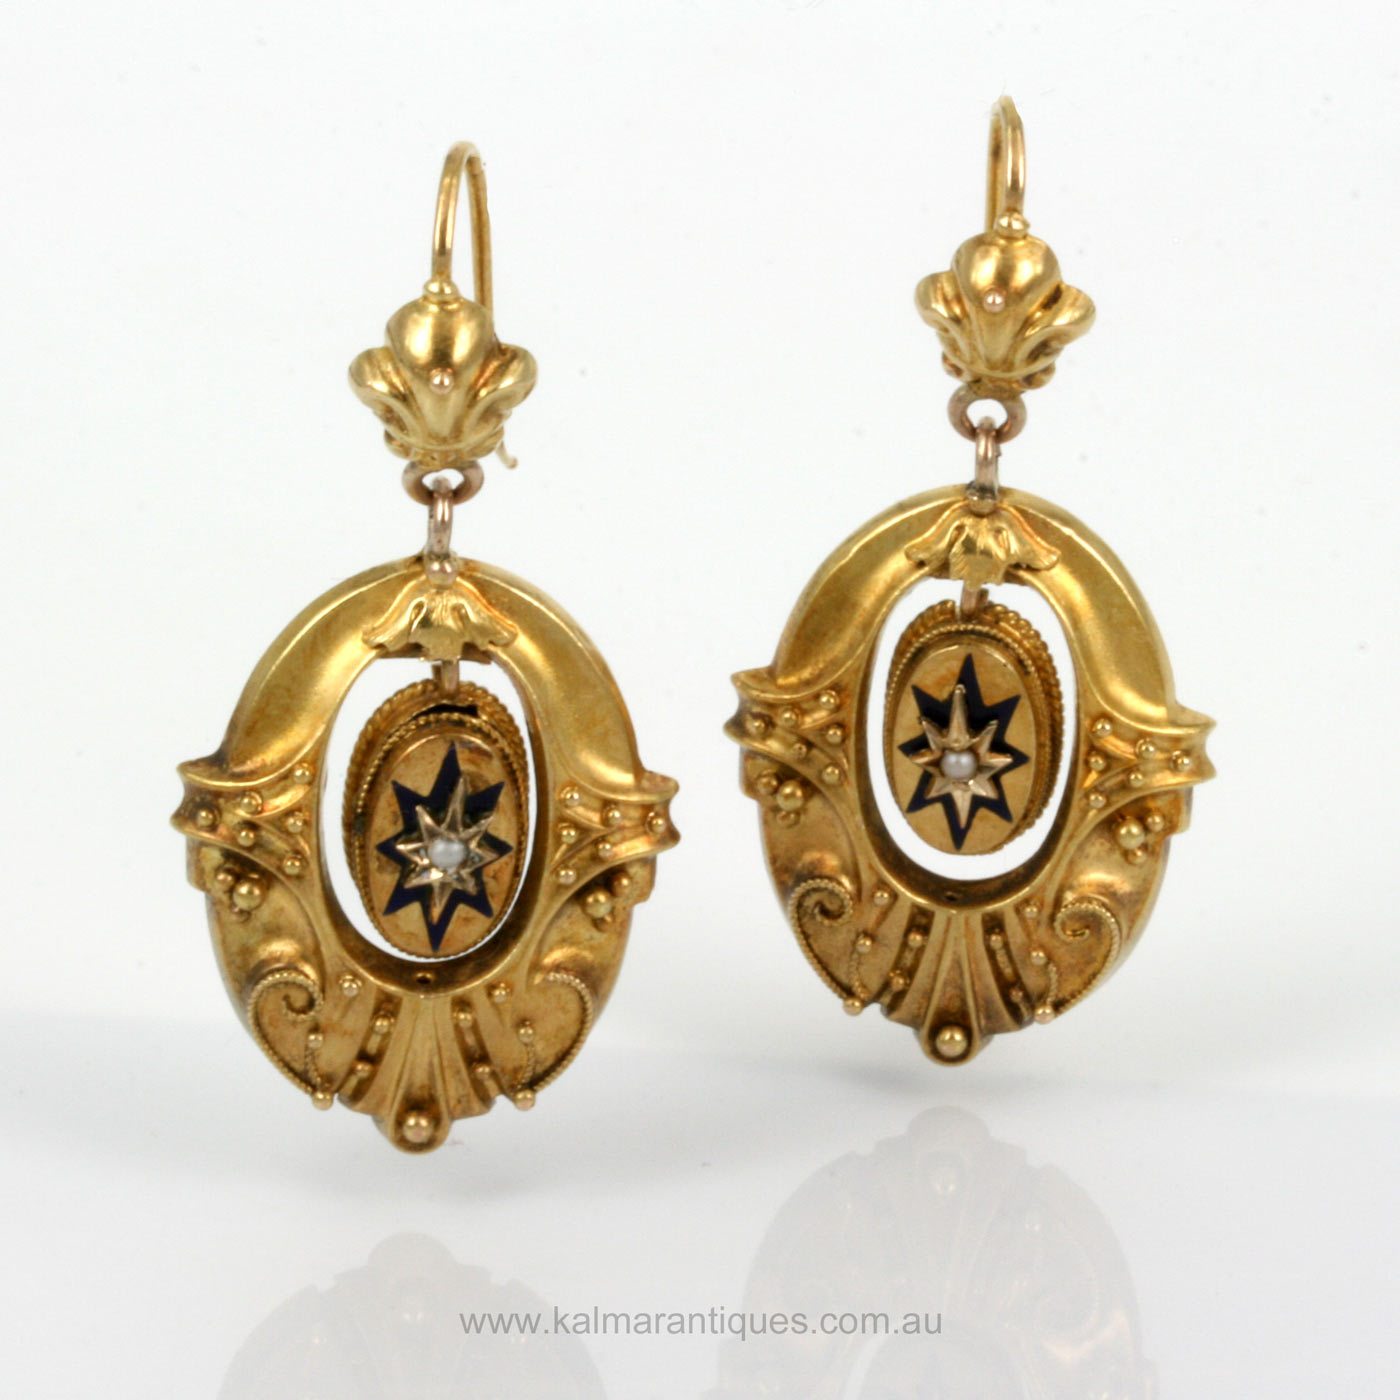 store earrings latest gold tops for with weight jewelry online price watch women antique